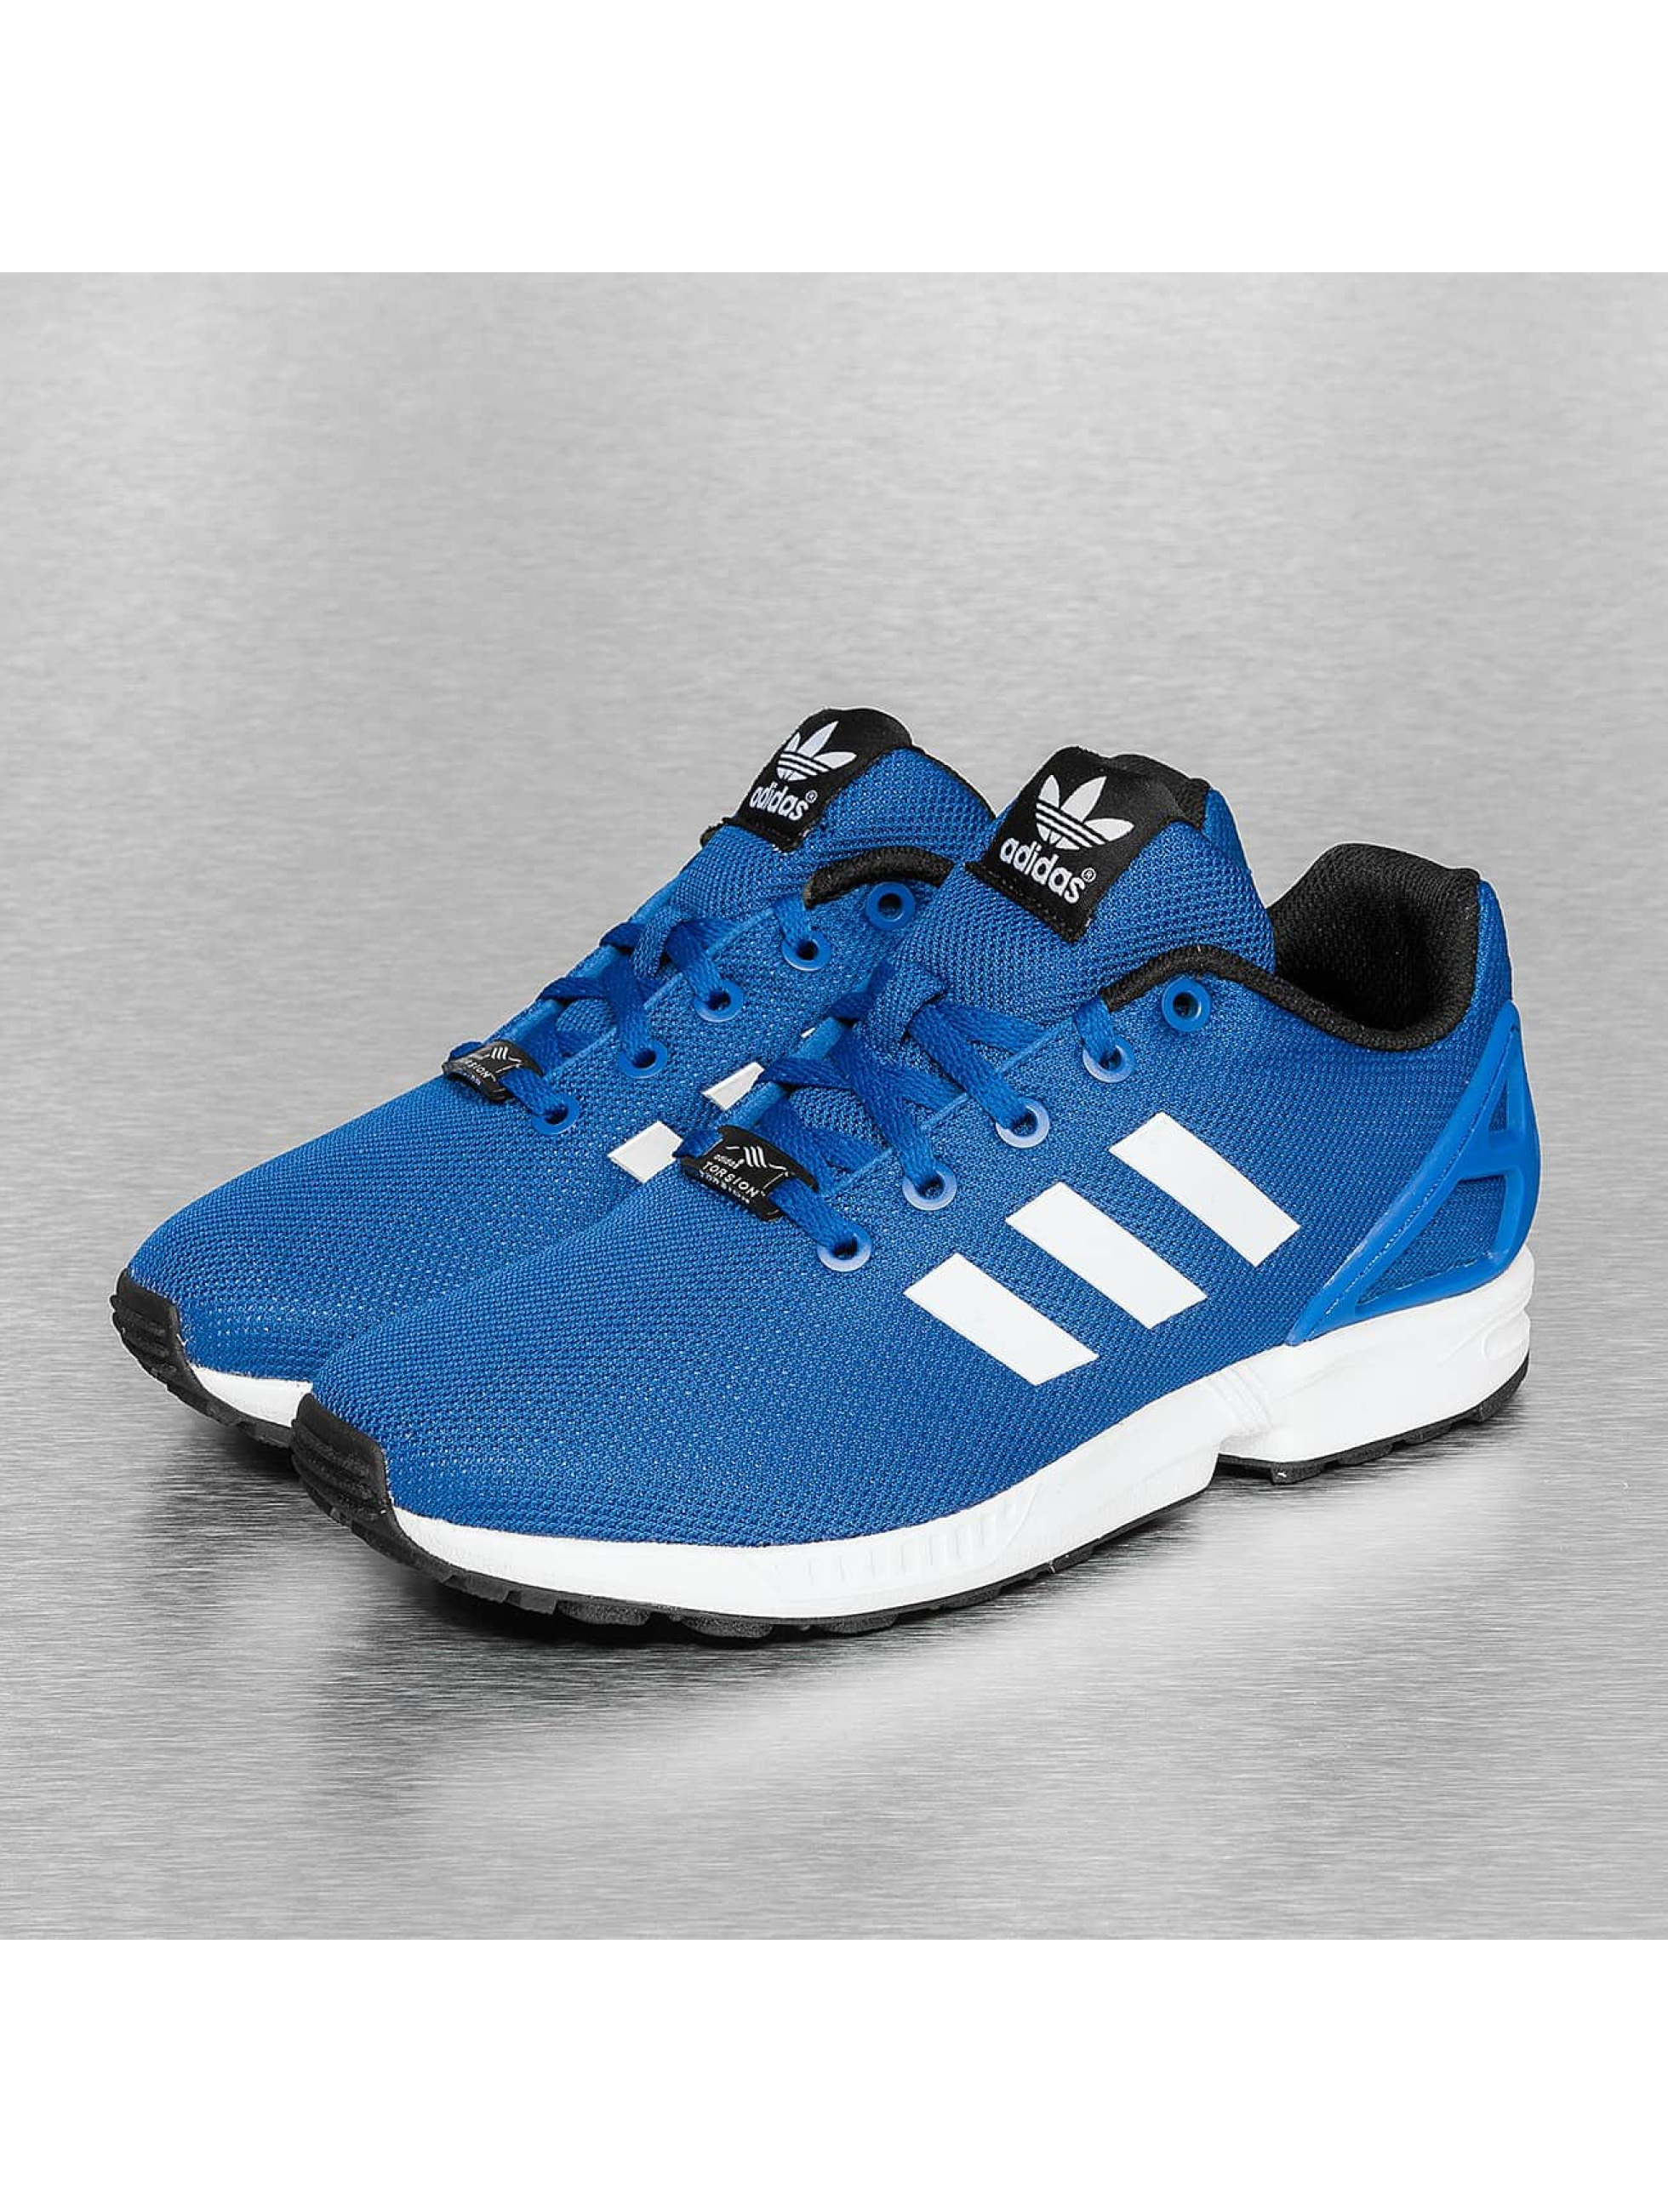 zx flux adidas blau. Black Bedroom Furniture Sets. Home Design Ideas